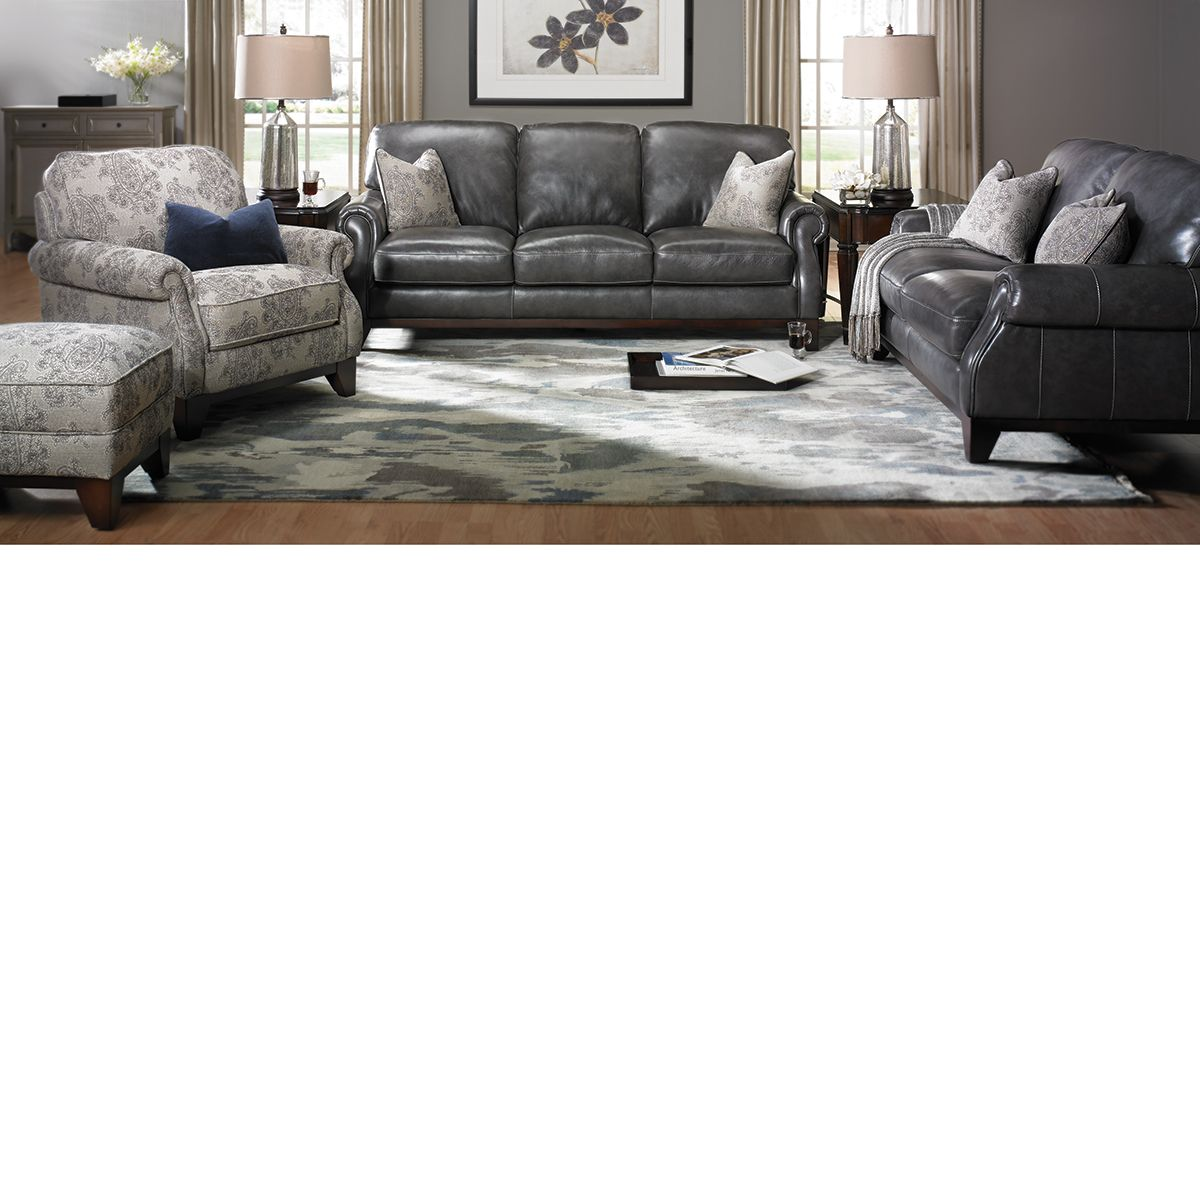 The Dump Luxe Furniture Outlet Condo Living Room Top Grain Leather Sofa Leather Sofa #the #dump #living #room #sets